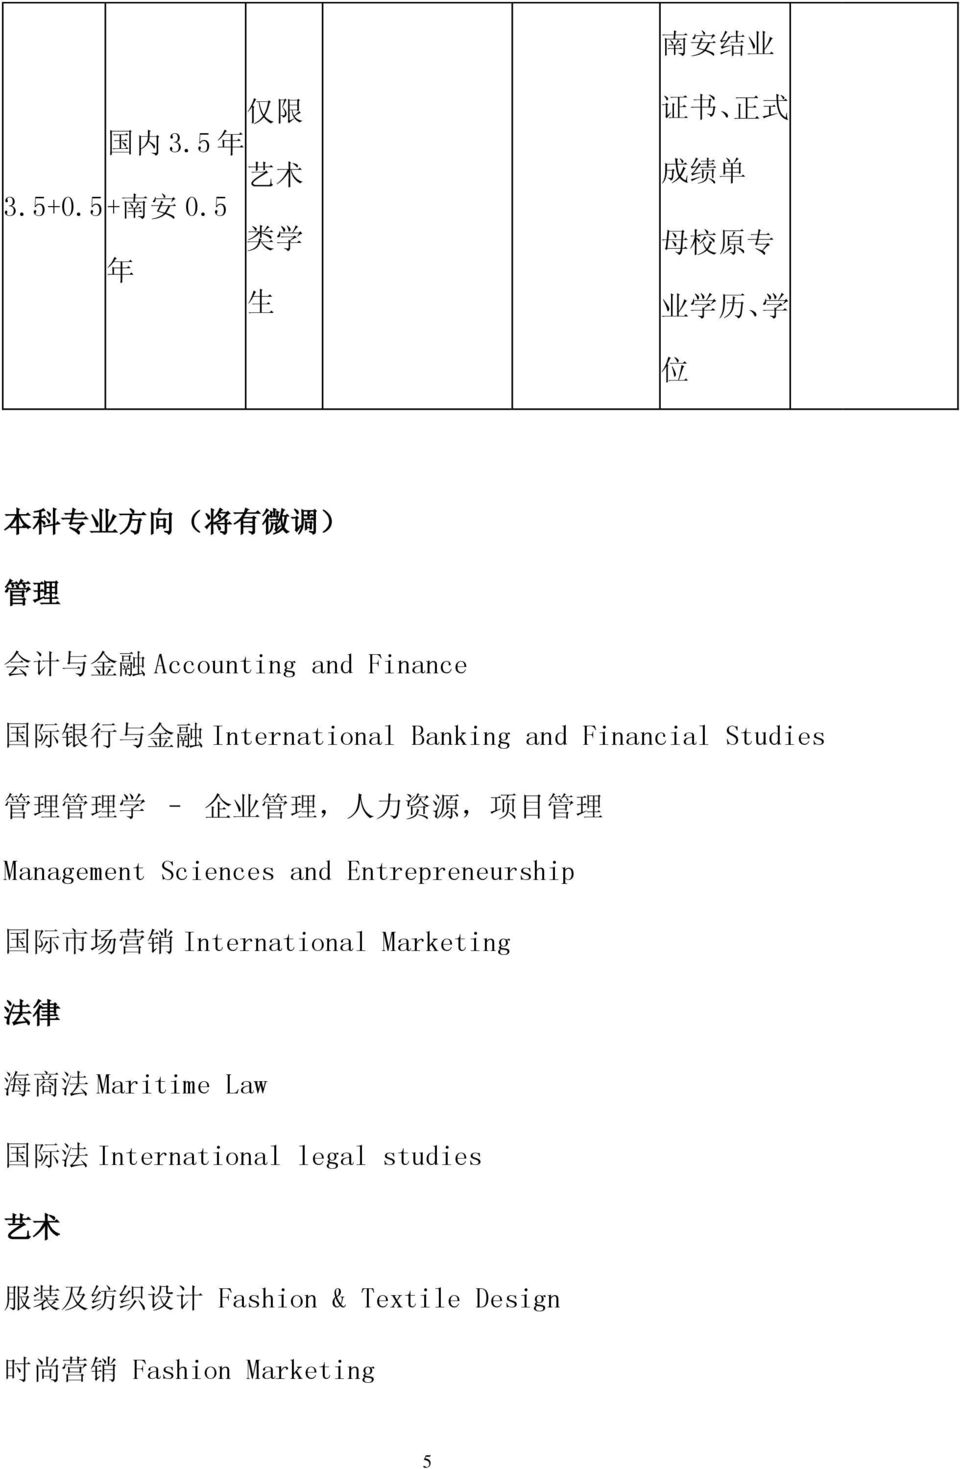 与 金 融 International Banking and Financial Studies 管 理 管 理 学 企 业 管 理, 人 力 资 源, 项 目 管 理 Management Sciences and